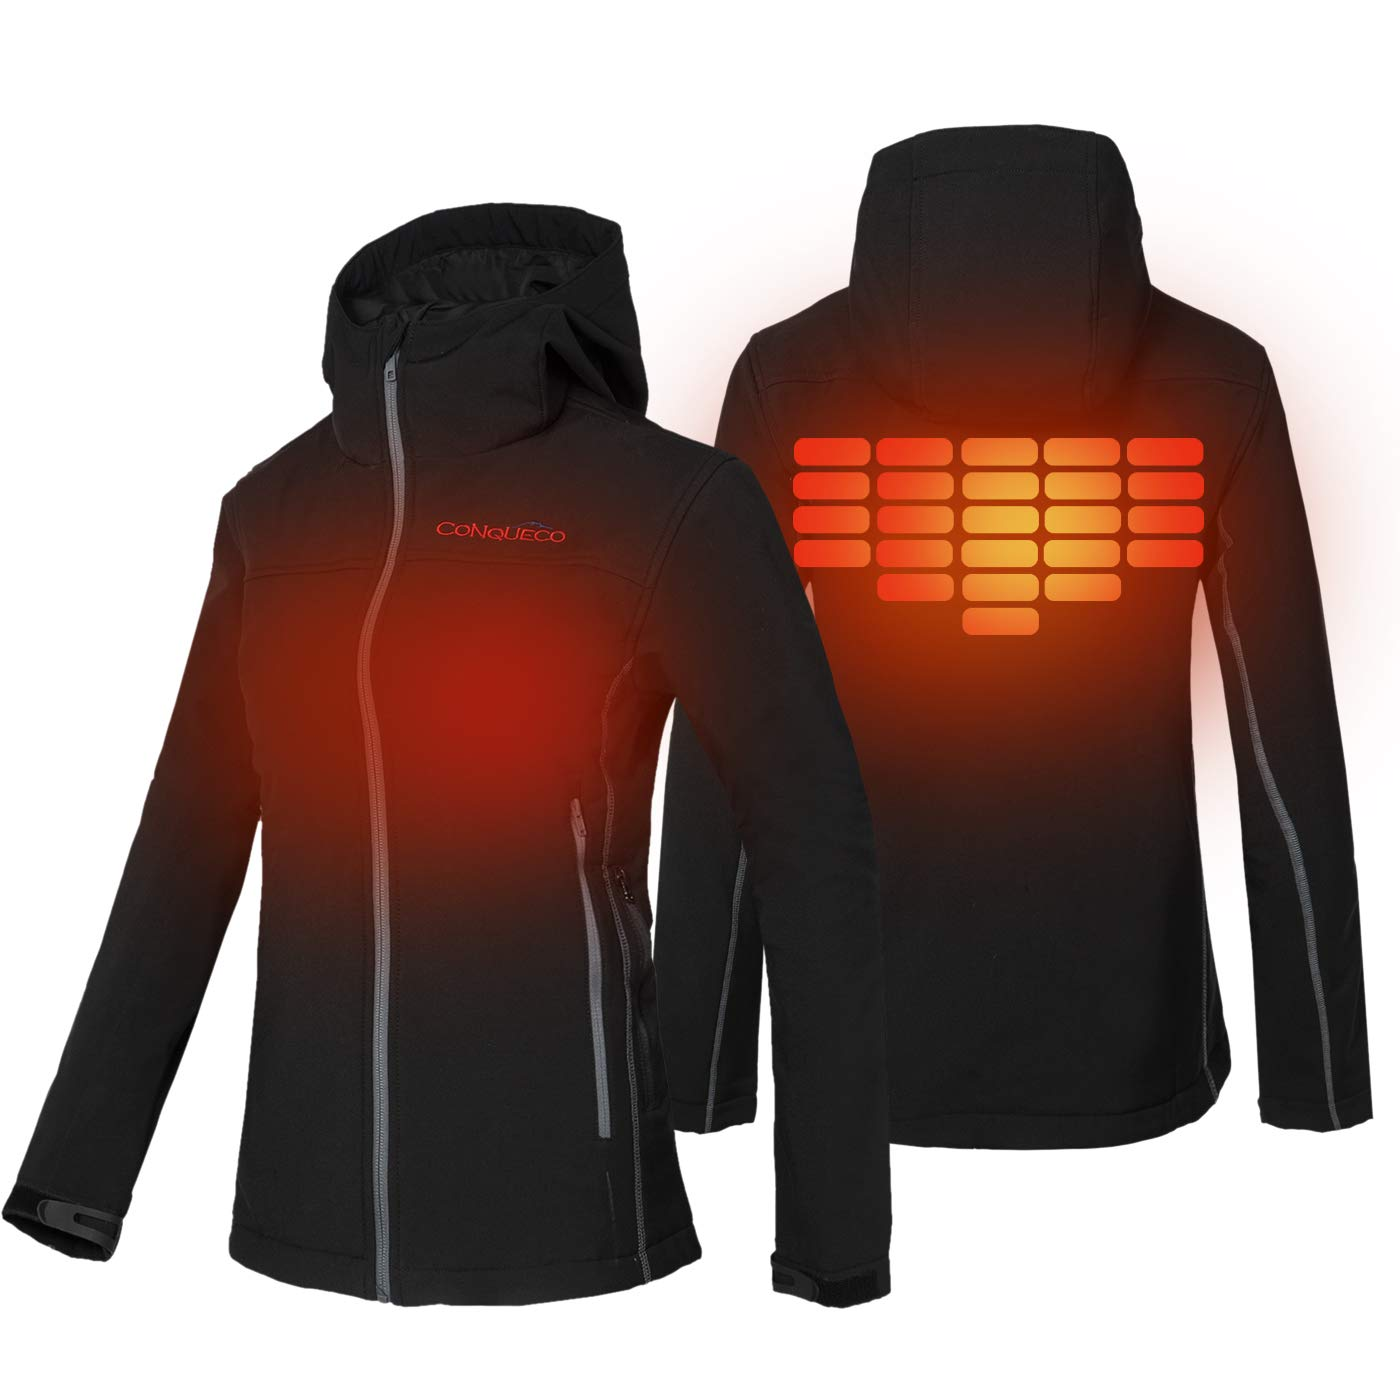 Womens Heated Clothing >> Conqueco Women S Heated Jacket Slim Fit Electric Hoodie Jacket With